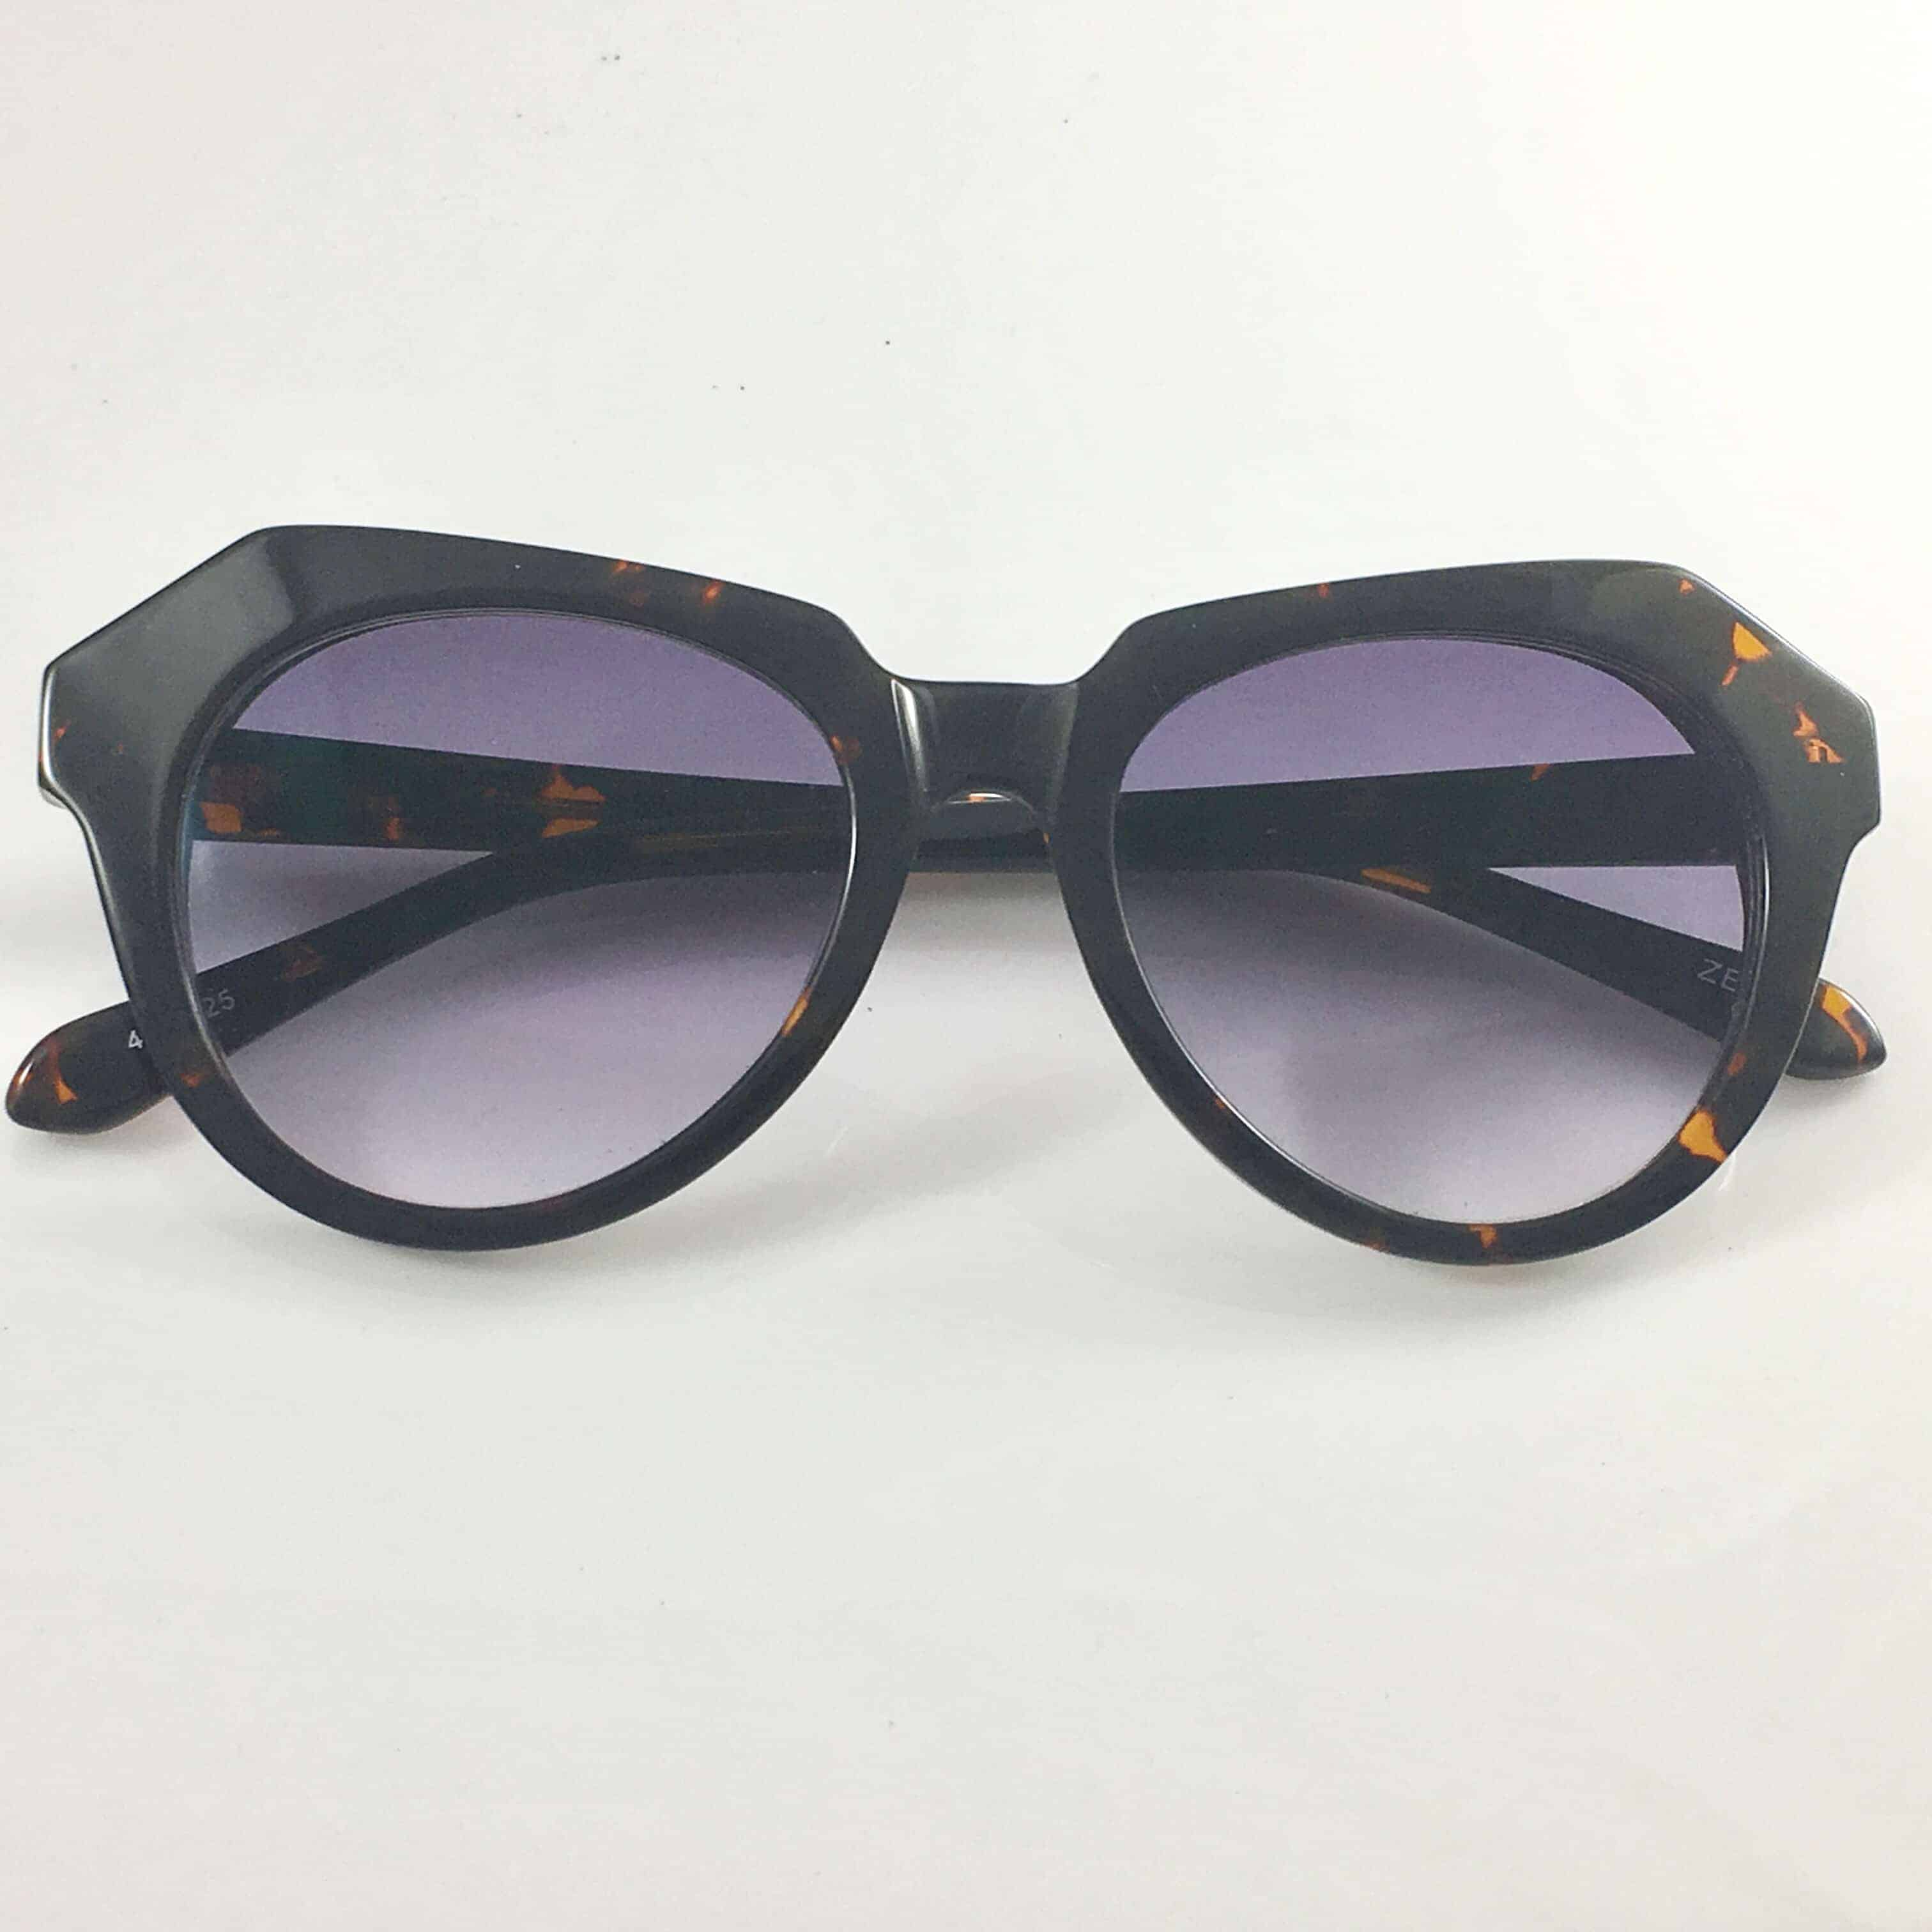 Sunglasses from Zenni Optical